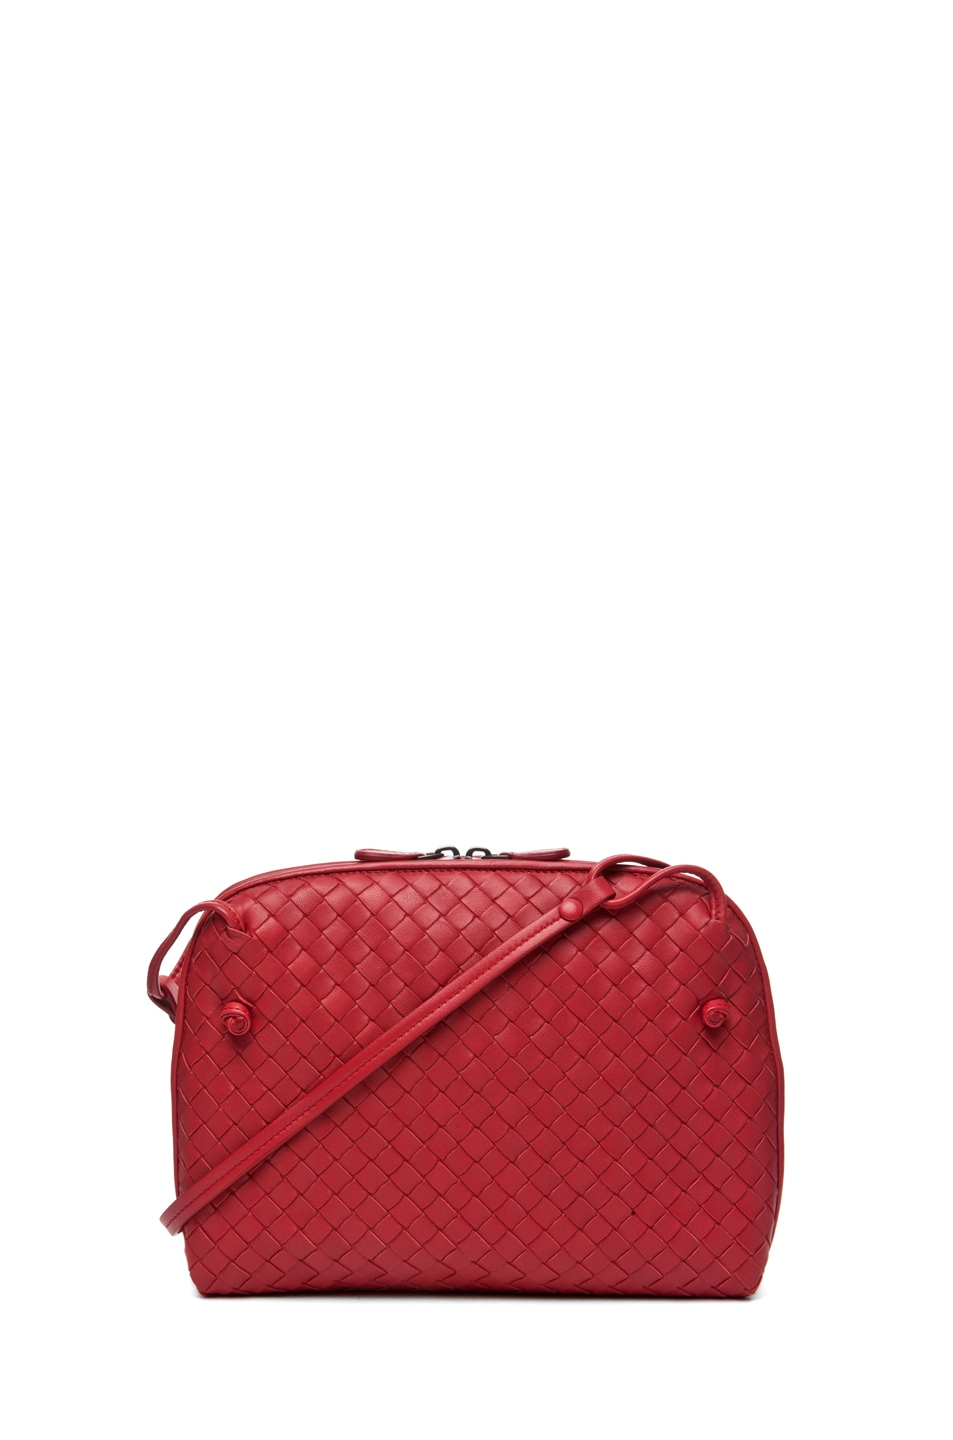 Image 1 of Bottega Veneta Small Messenger Bag in Blood